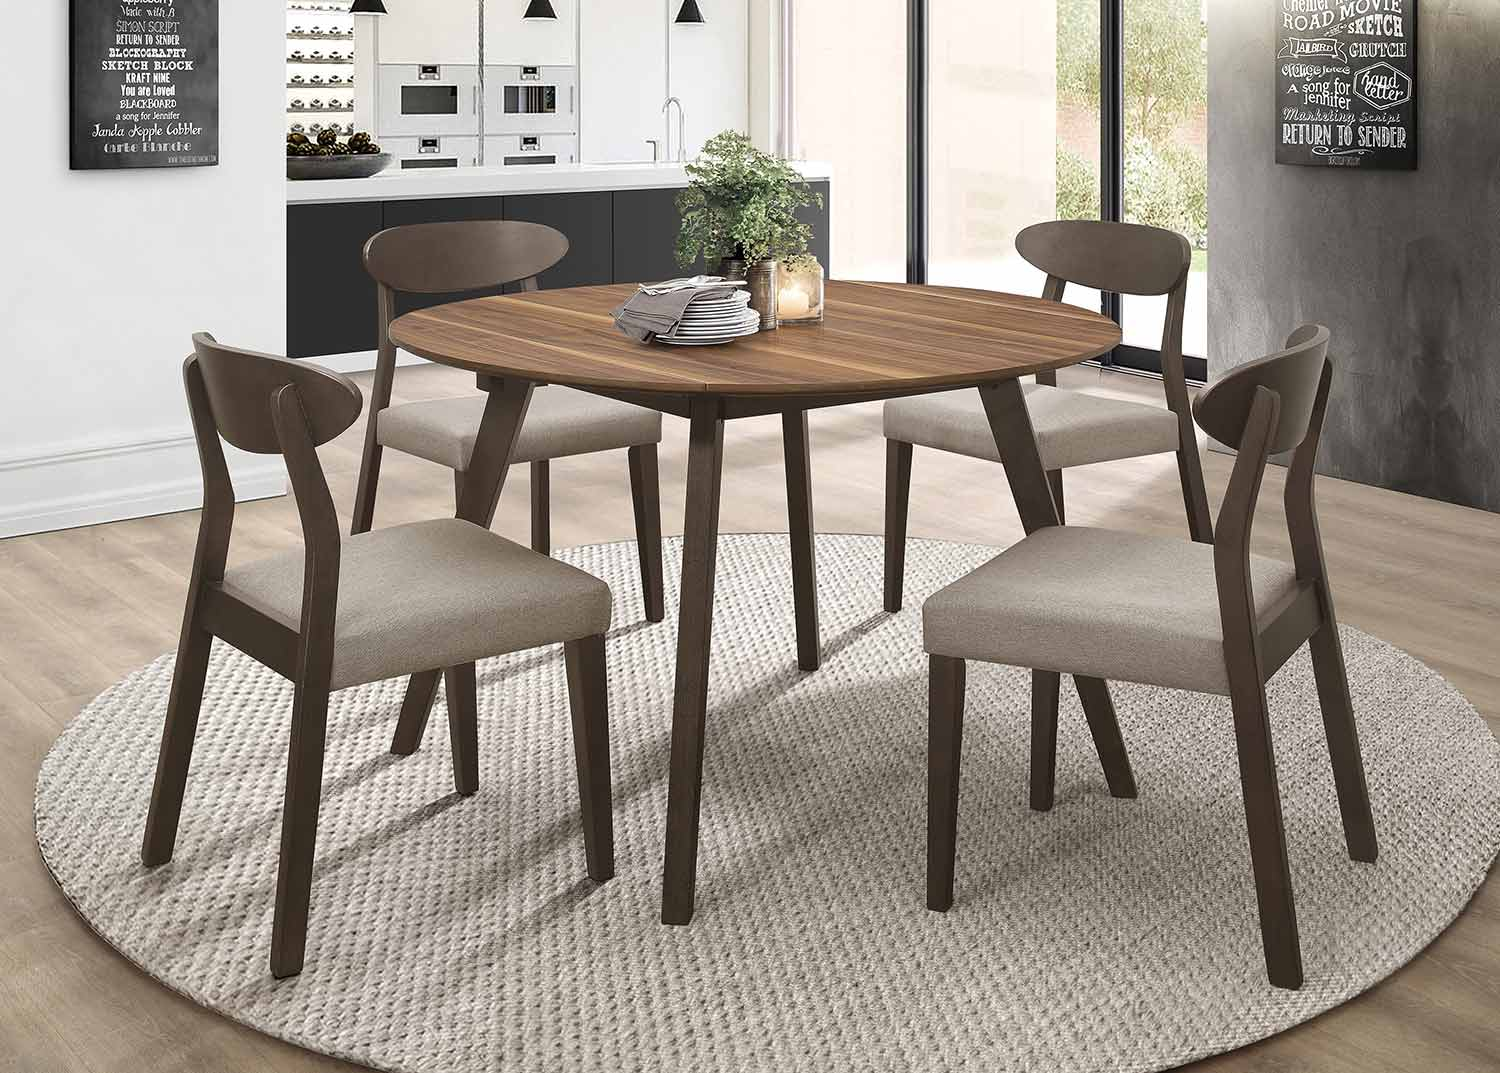 Homelegance Beane Round Dining Set - Walnut 2-Tone